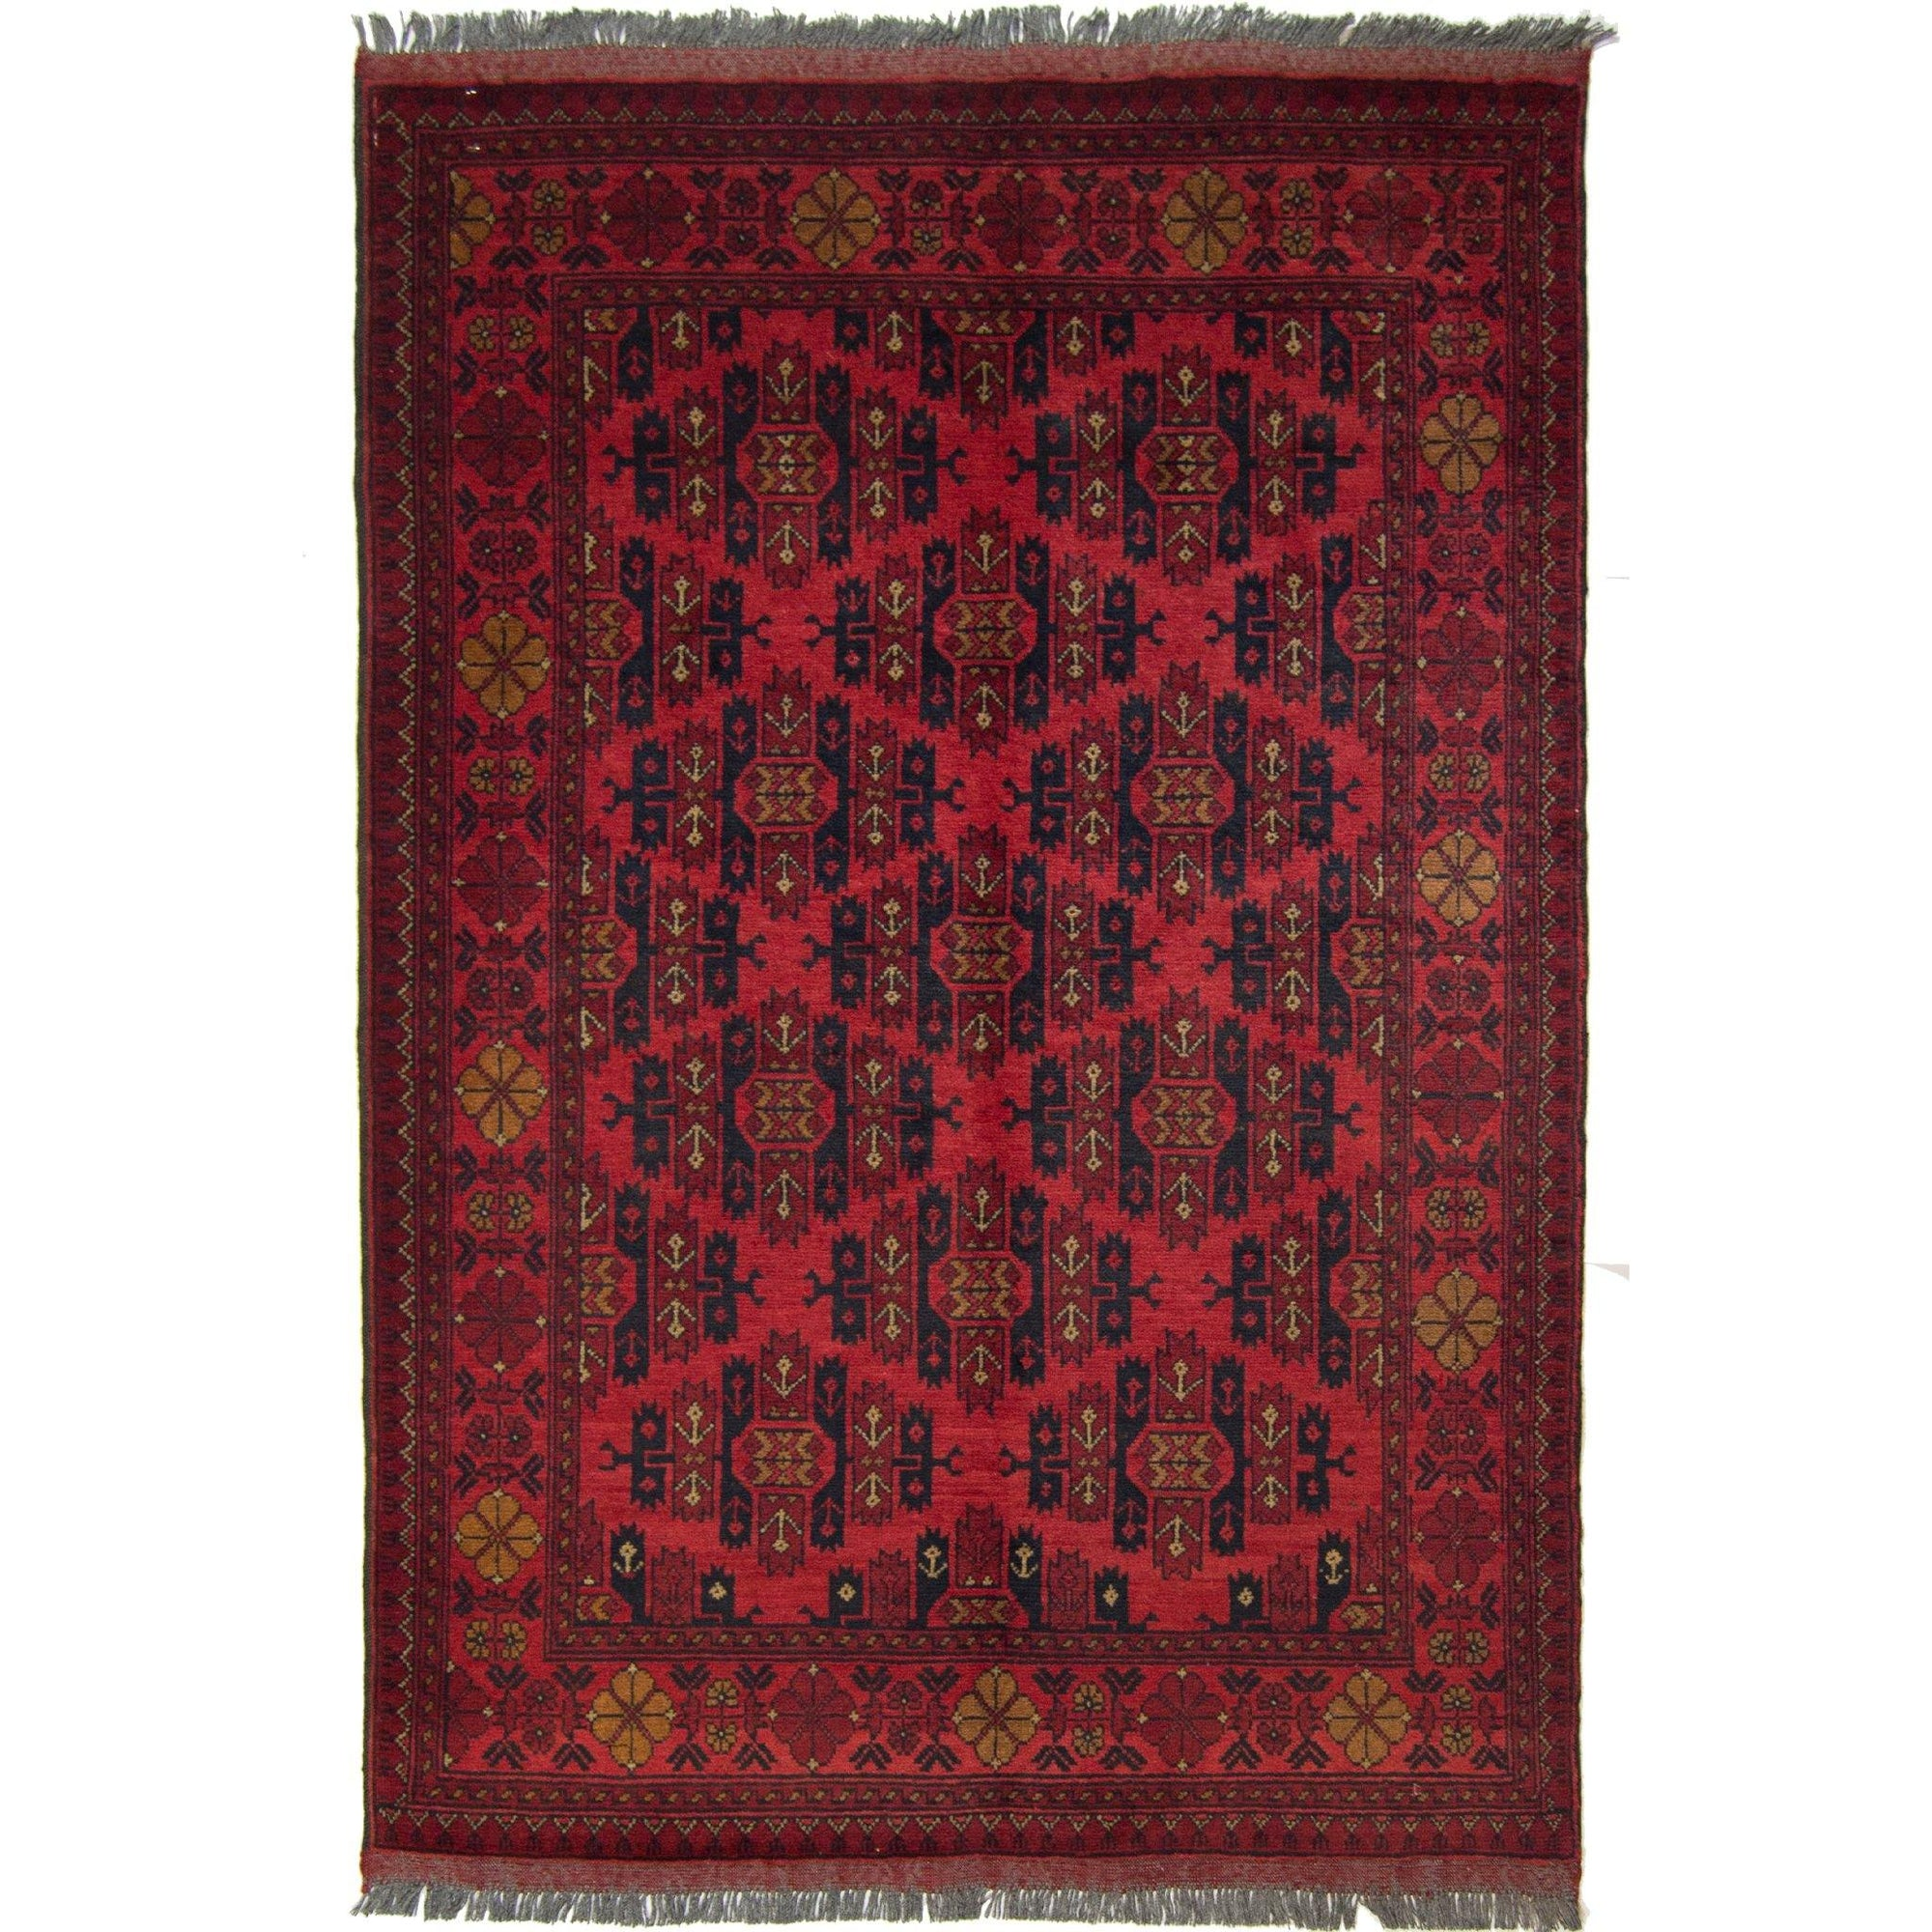 Afghan 100% Wool Hand-knotted Tribal Khal Mohammadi Rug 102cm x 148cm Persian-Rug | House-of-Haghi | NewMarket | Auckland | NZ | Handmade Persian Rugs | Hand Knotted Persian Rugs